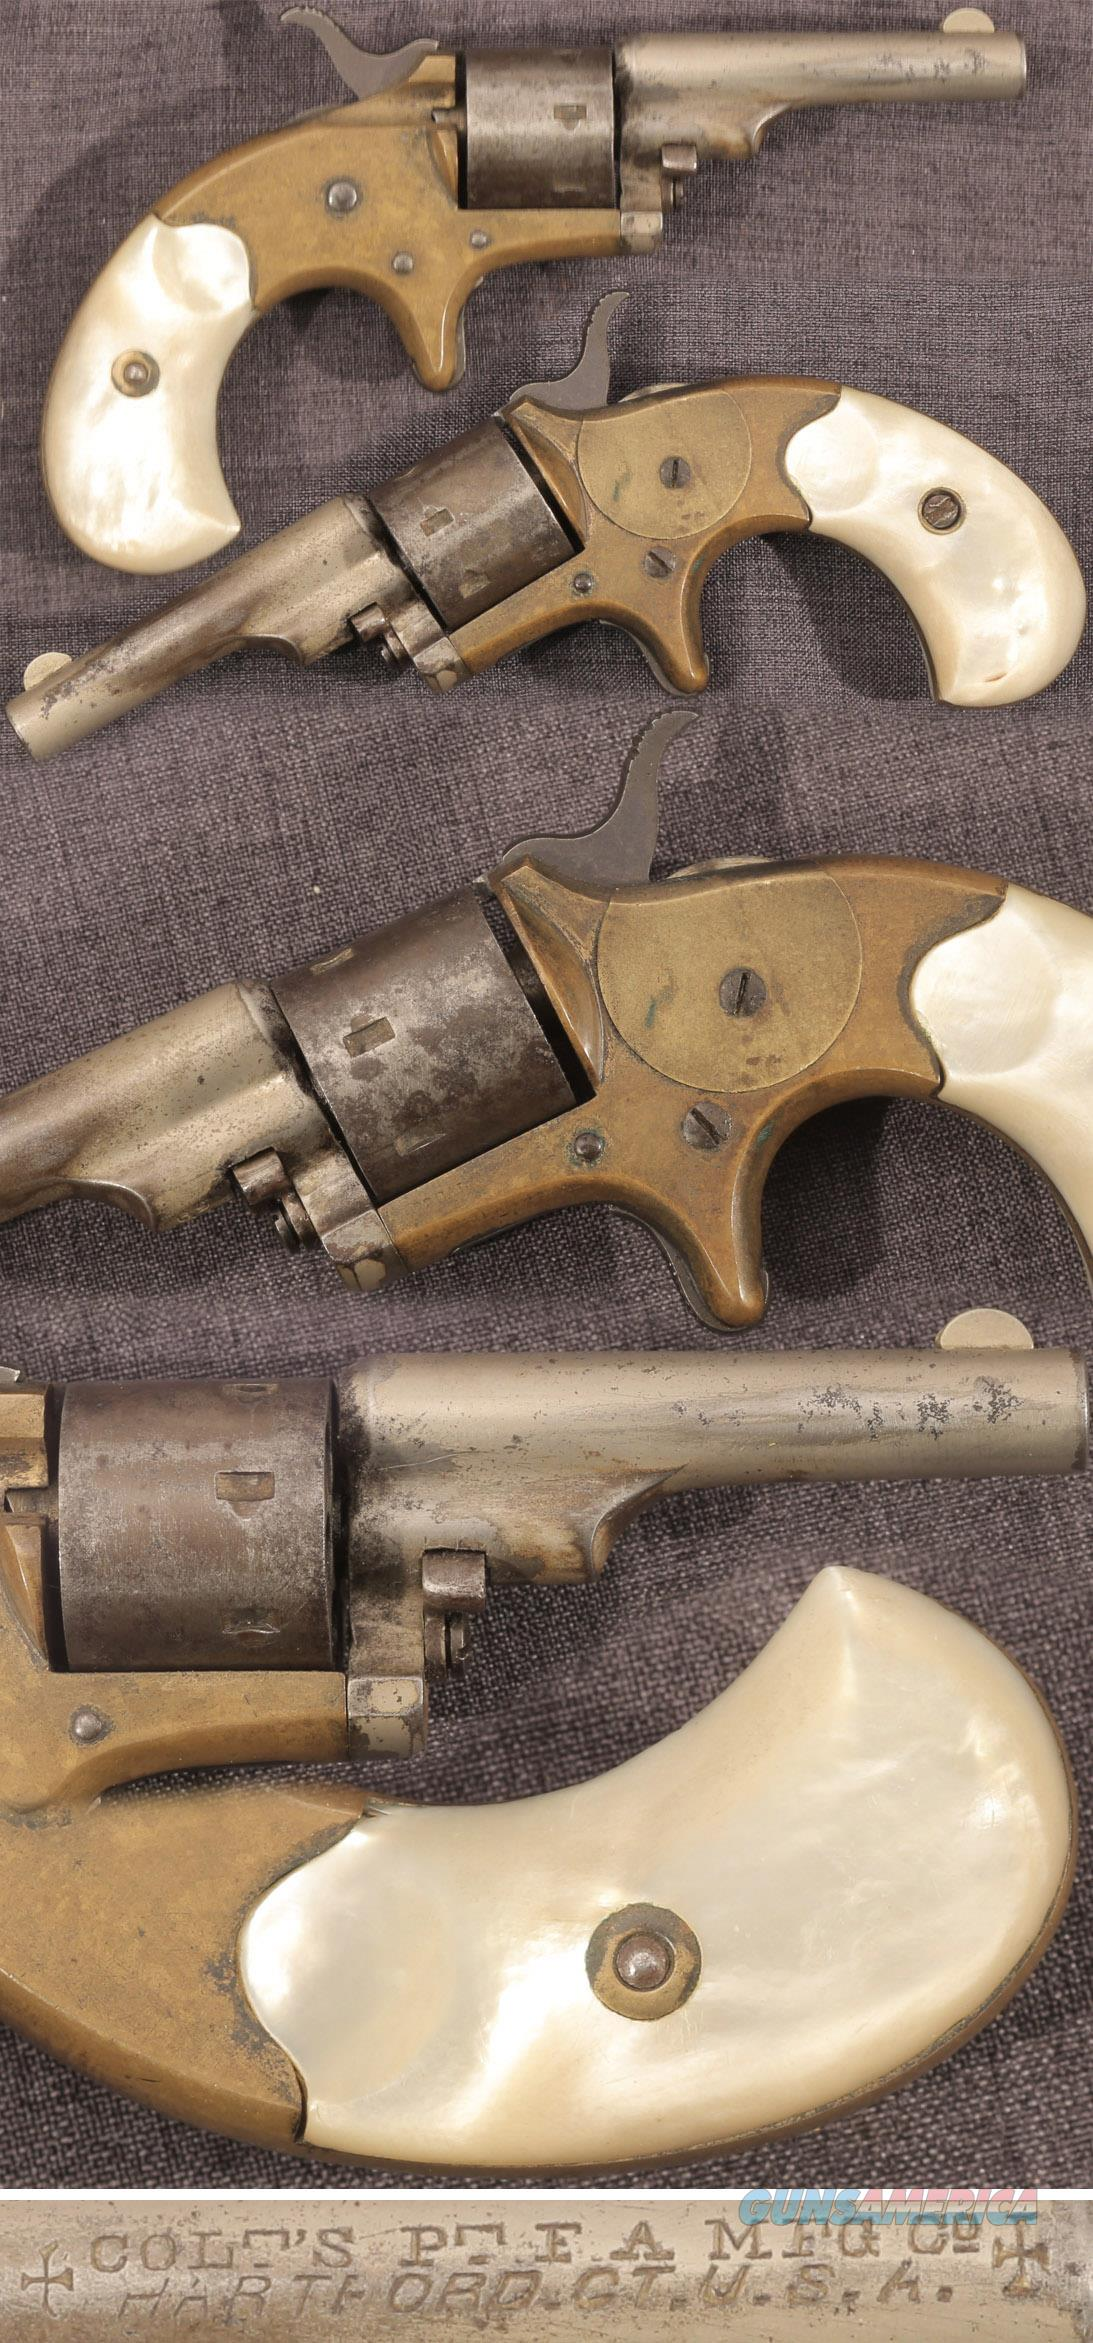 "Colt ""Open Top"" .22 caliber revolver with pearl grips  Guns > Pistols > Colt Single Action Revolvers - 1st Gen."